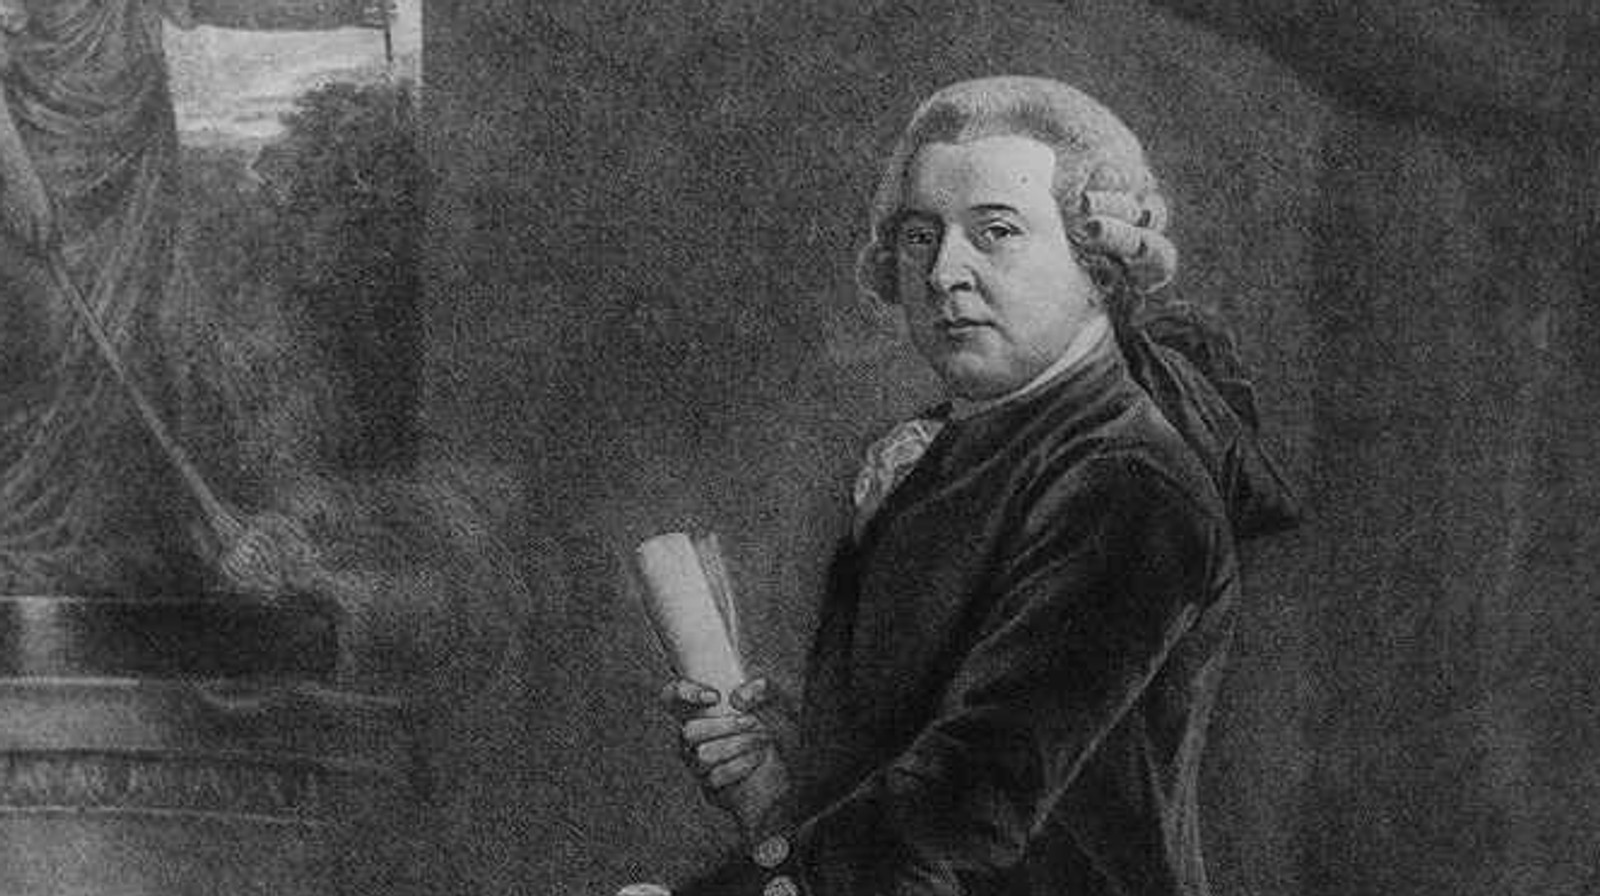 john adams essays John adams was born on october 30, 1735 in braintree, massachusetts adams entered harvard college at the age of 16 and after graduation, became a teacher in nearby worcester.